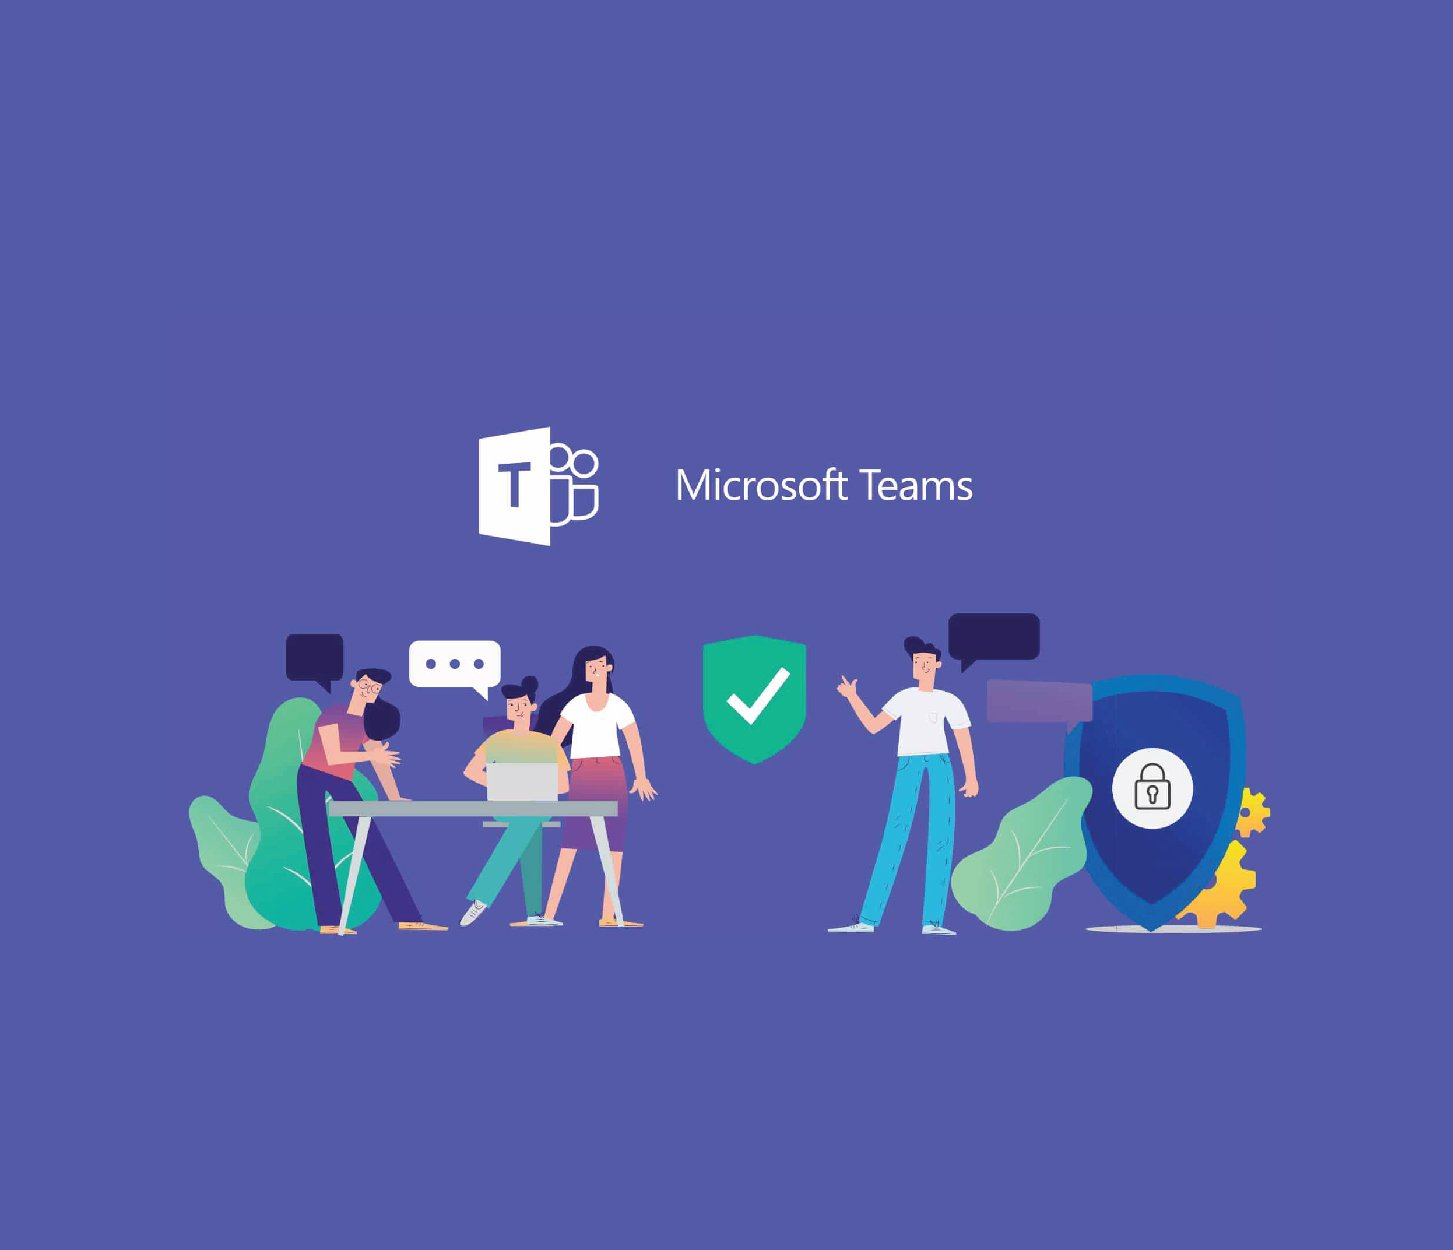 Microsoft teams purple